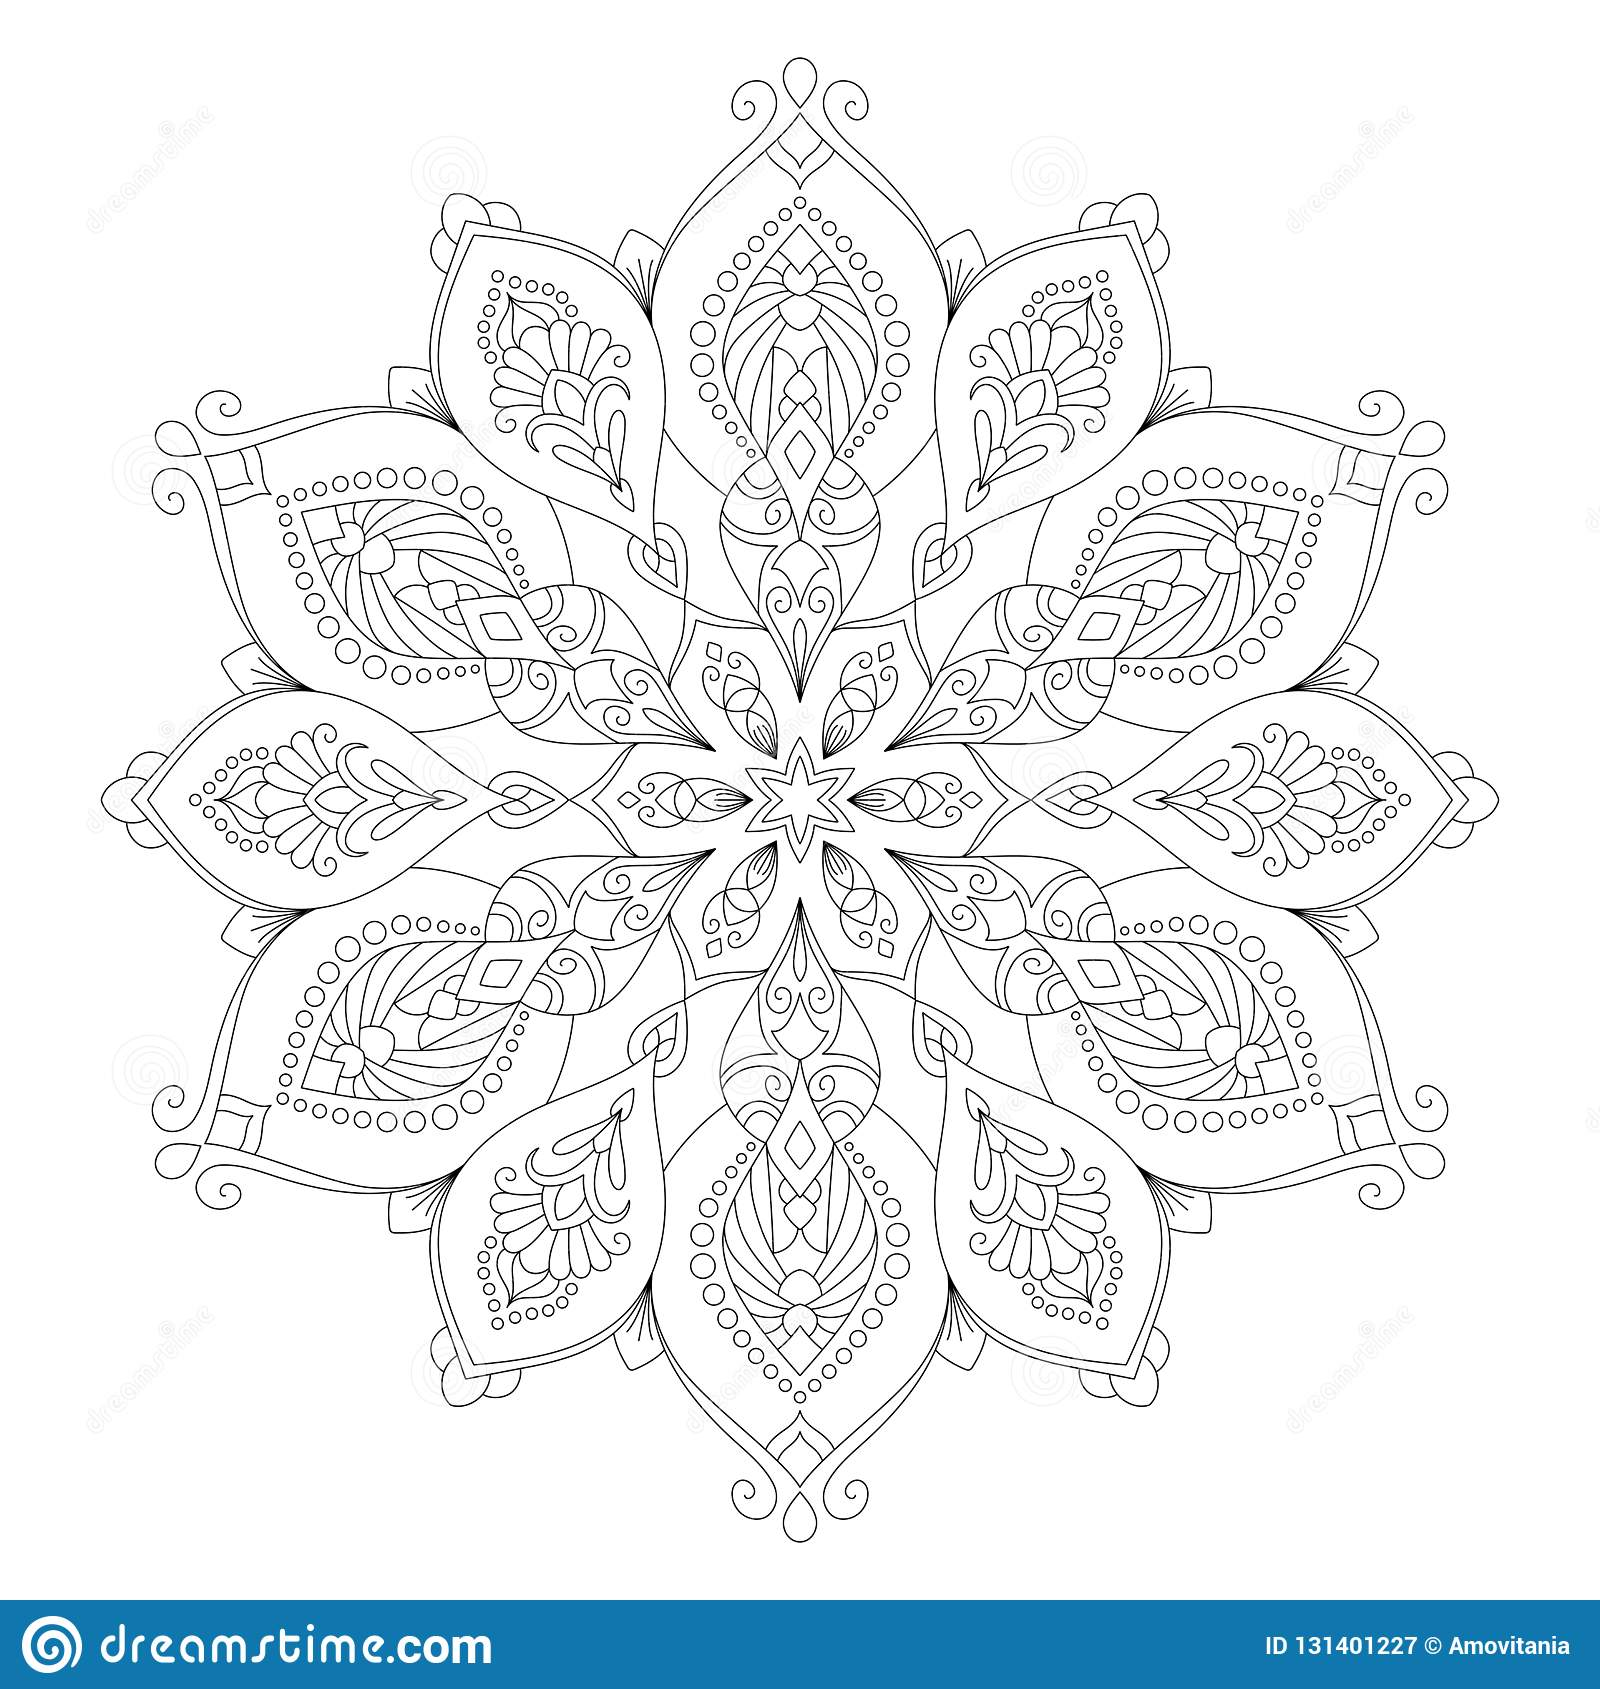 Flower Coloring Pages for Adults - Best Coloring Pages For Kids | 1689x1600